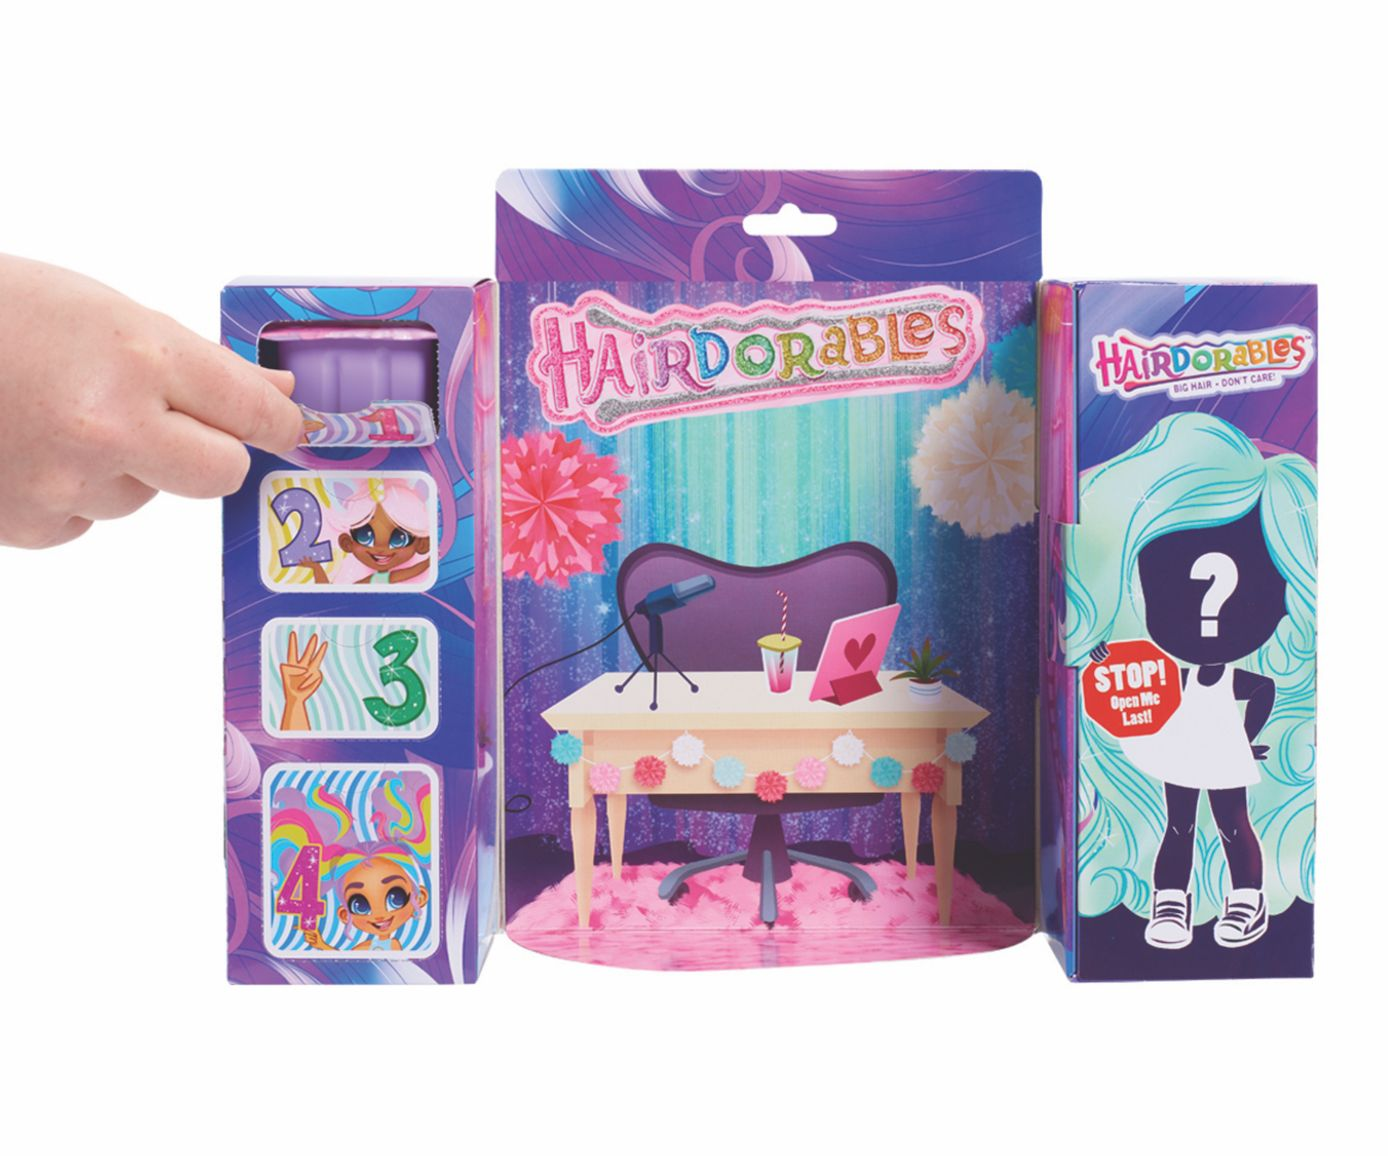 The Top 12 Toys For Christmas 2018 In The Uk According To